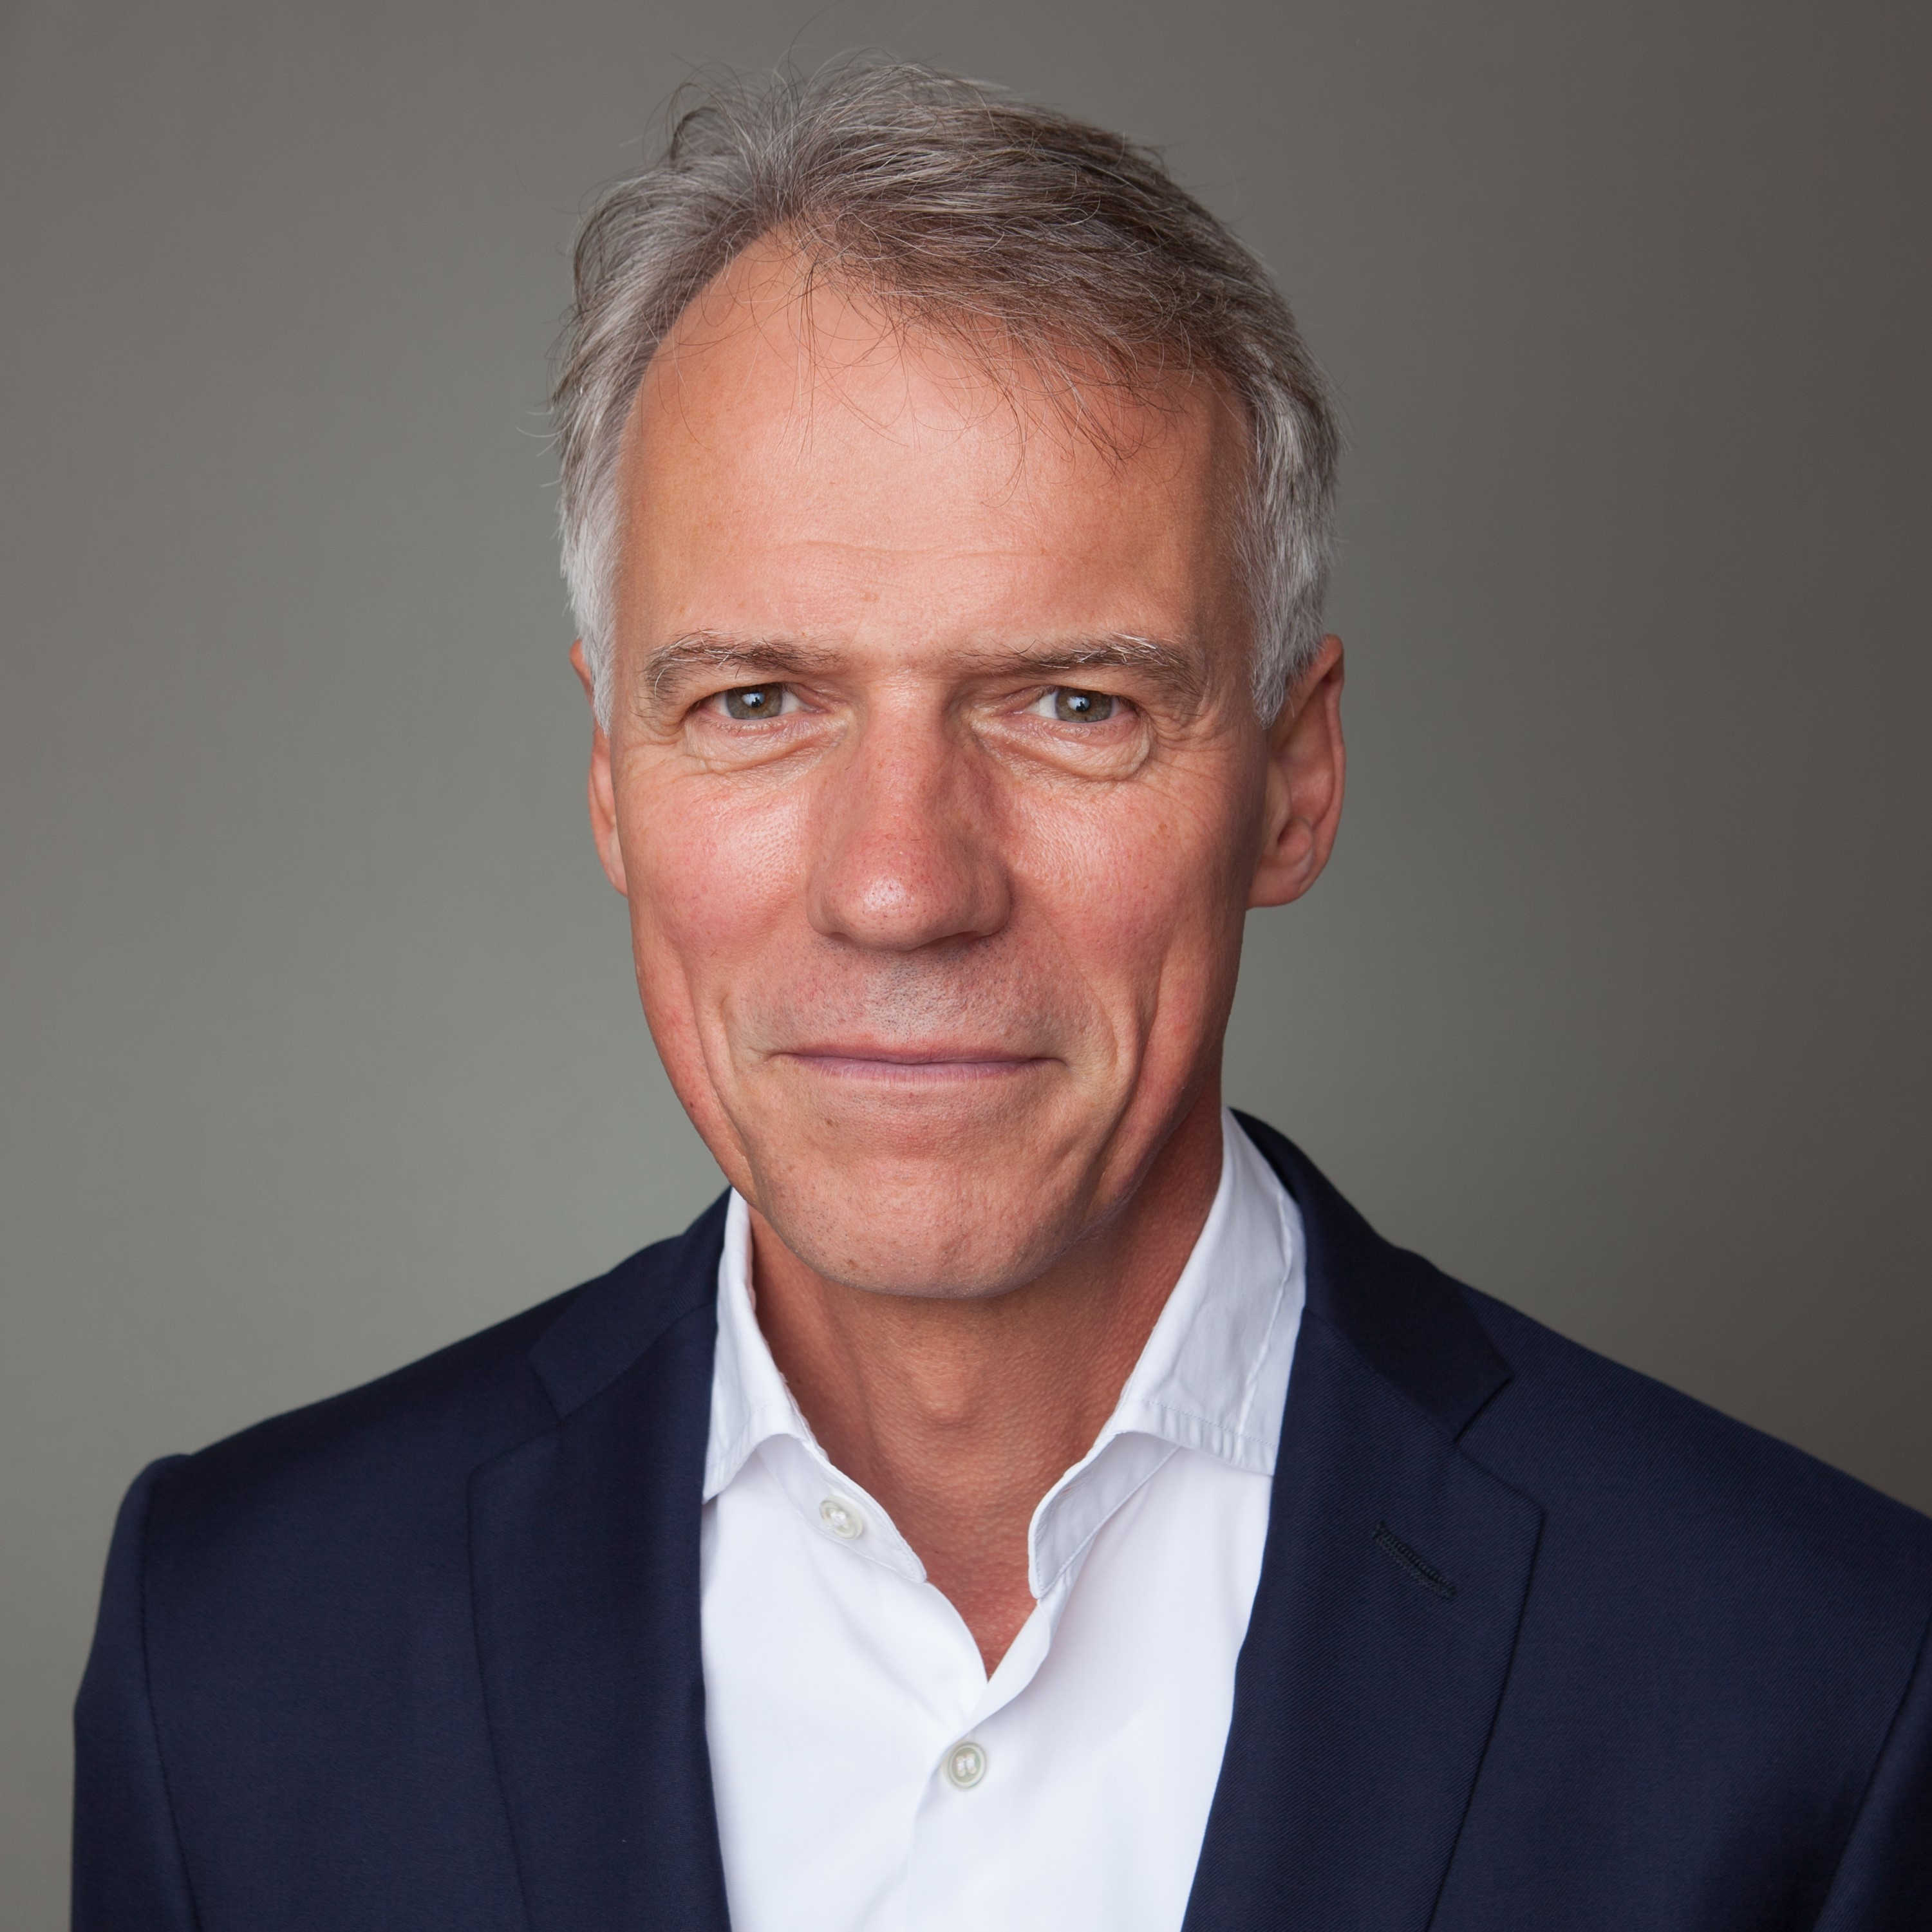 S.Oliver: Claus-Dietrich Lahrs new CEO